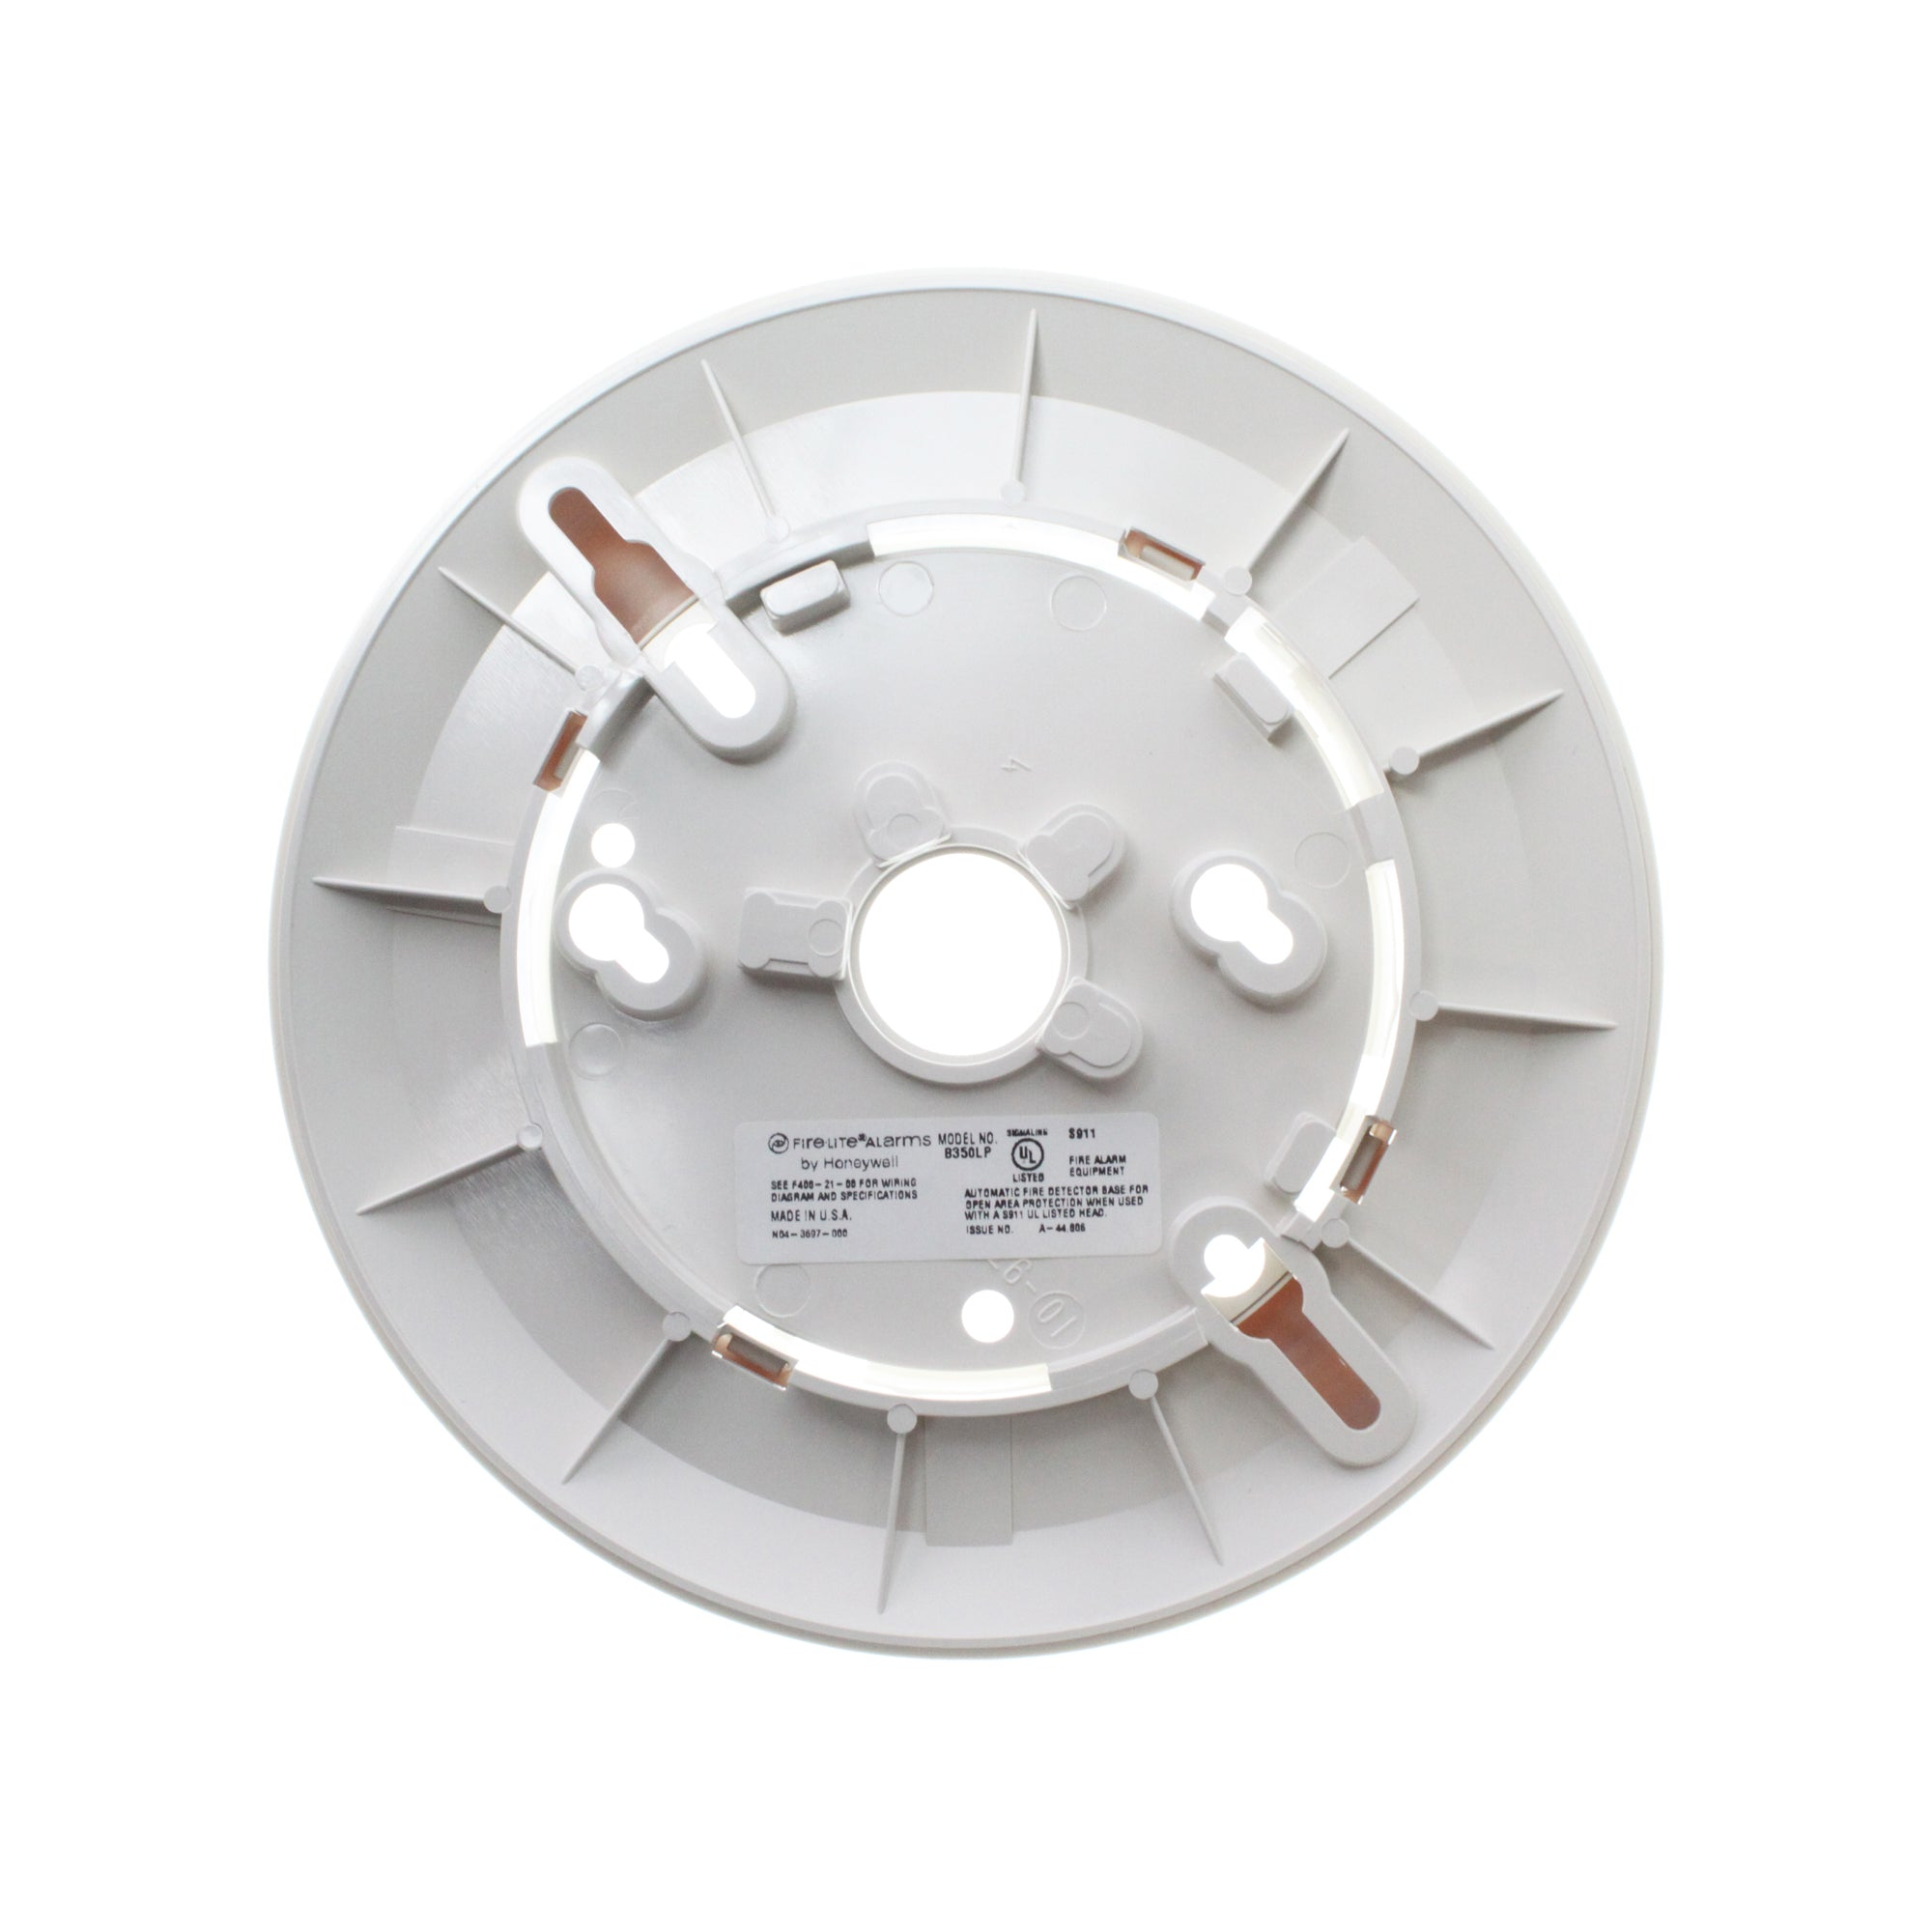 FIRE-LITE B350LP LOW PROFILE ADDRESSABLE DETECTOR MOUNTING